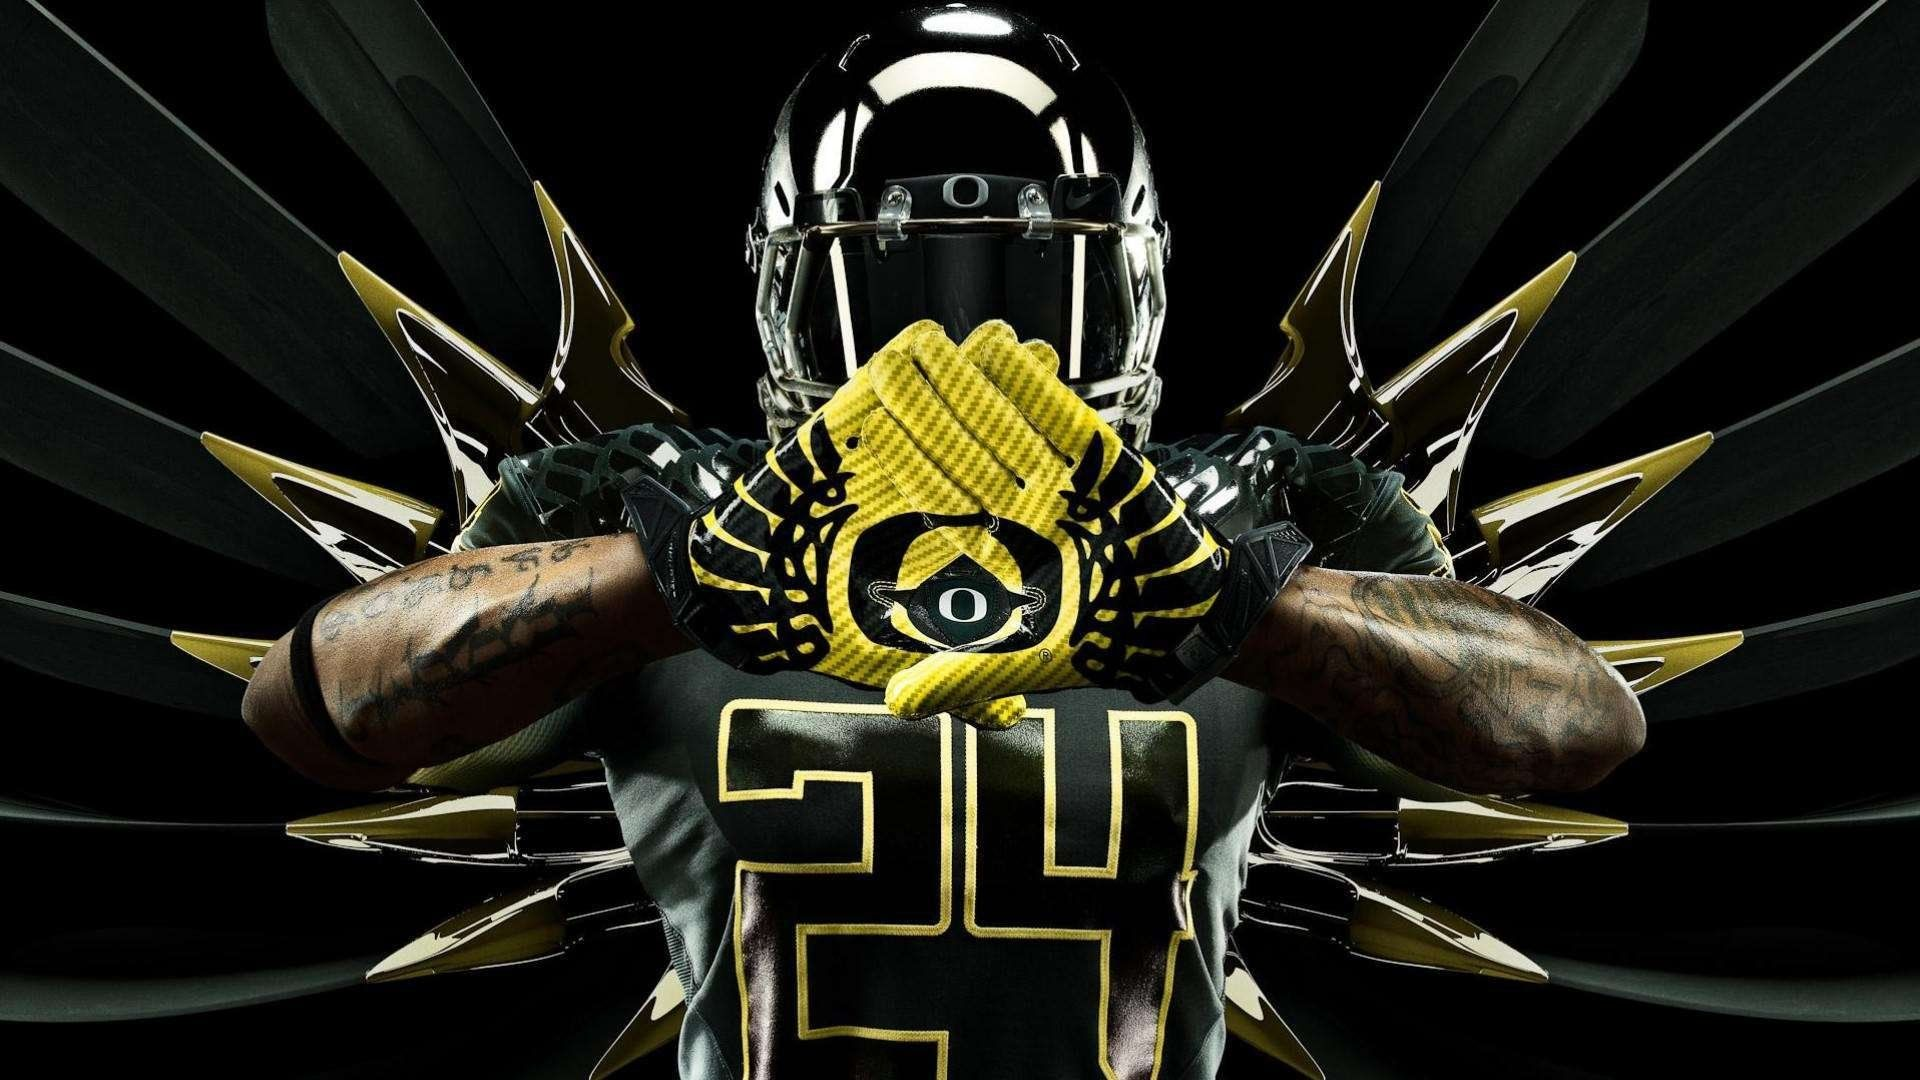 Free College Football Wallpapers Group 1100—634 Free College